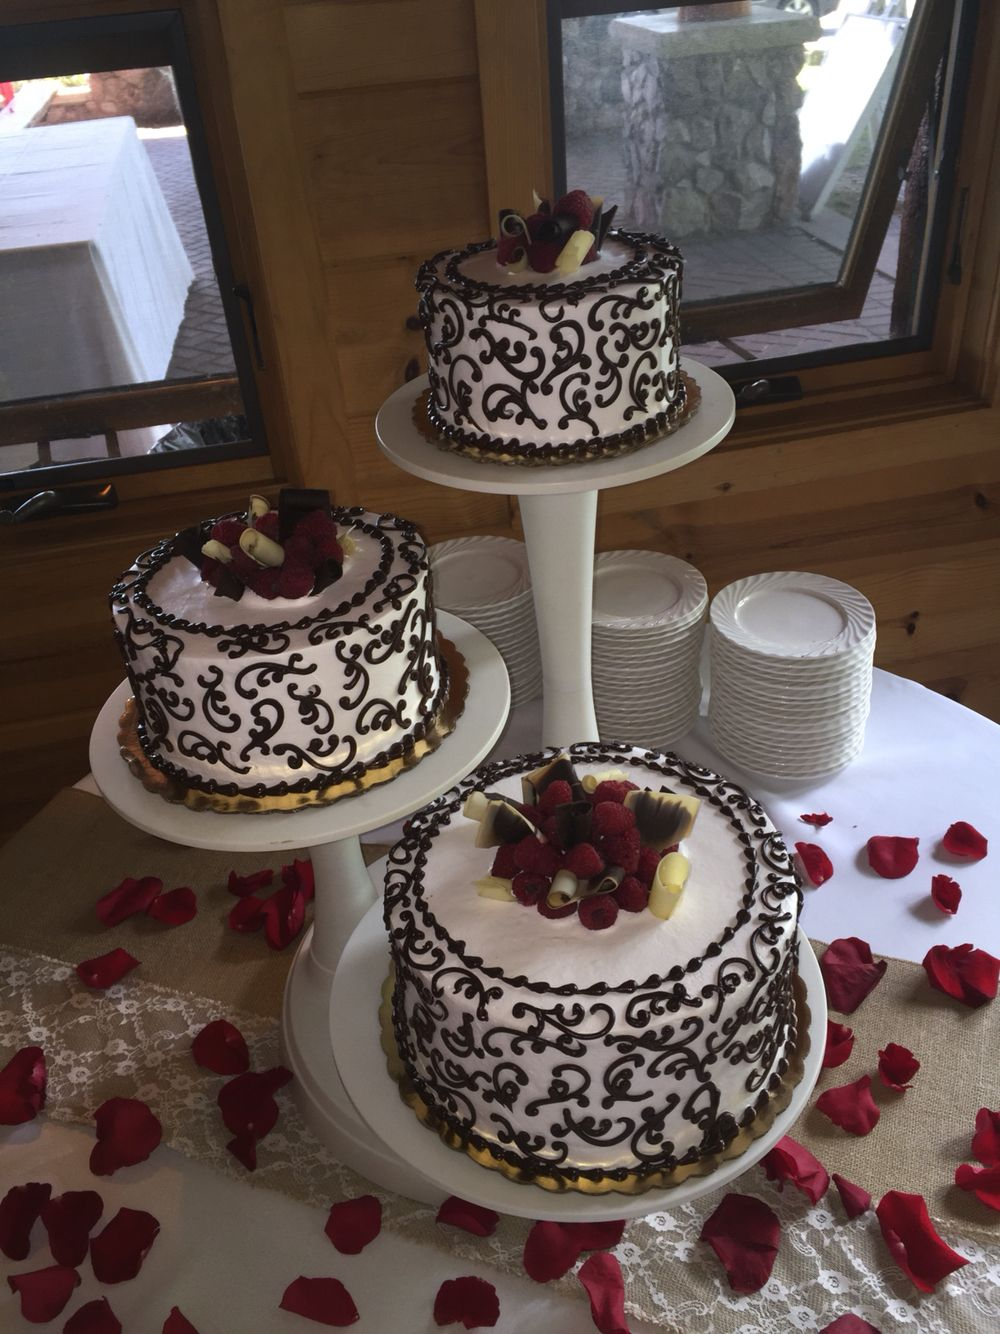 Our Signature Raspberry Bomb Cake Dressed Up For A Wedding